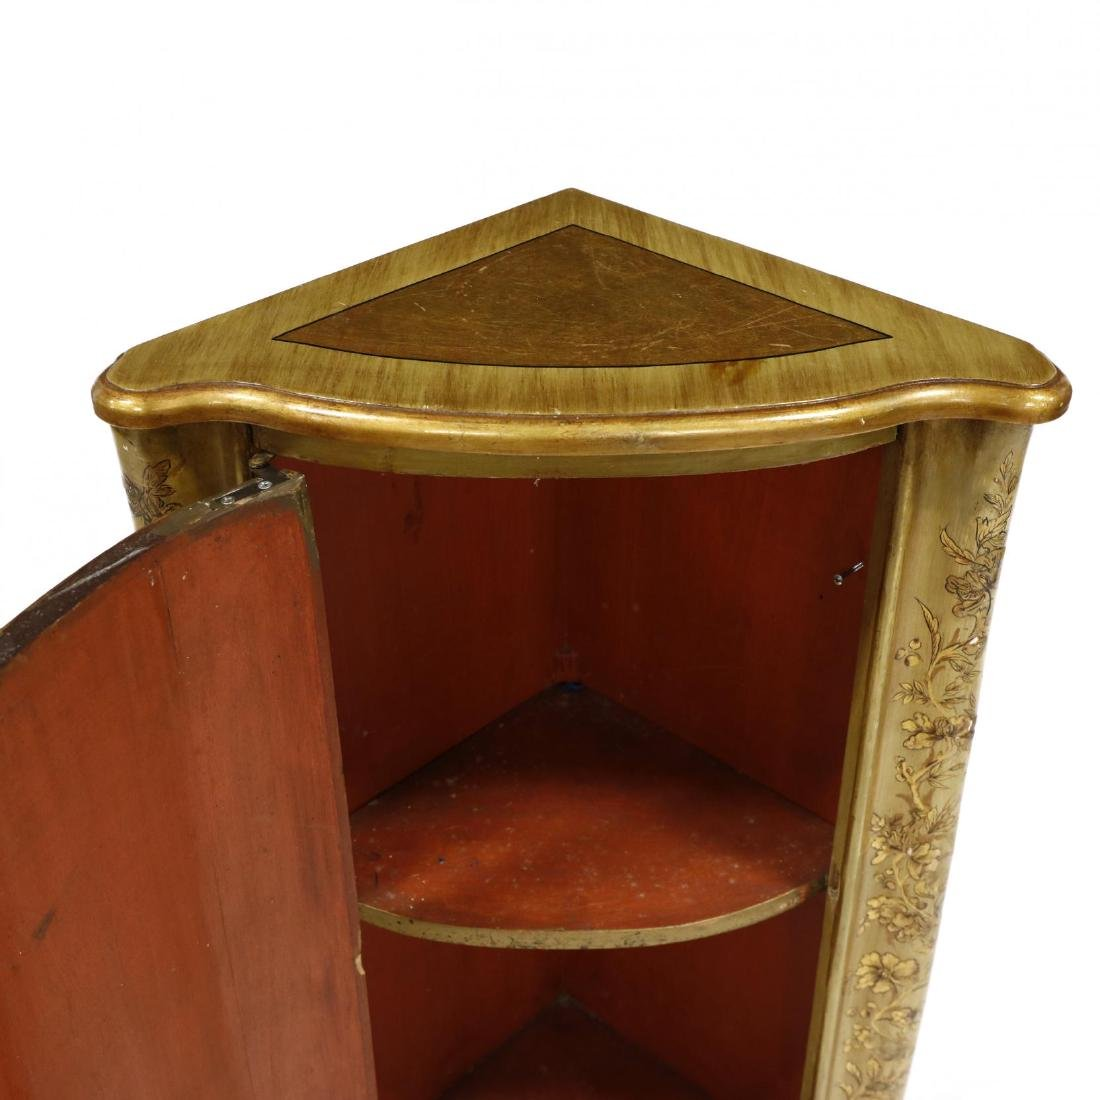 Chinoiserie Decorated Diminutive Corner Cabinet - 3